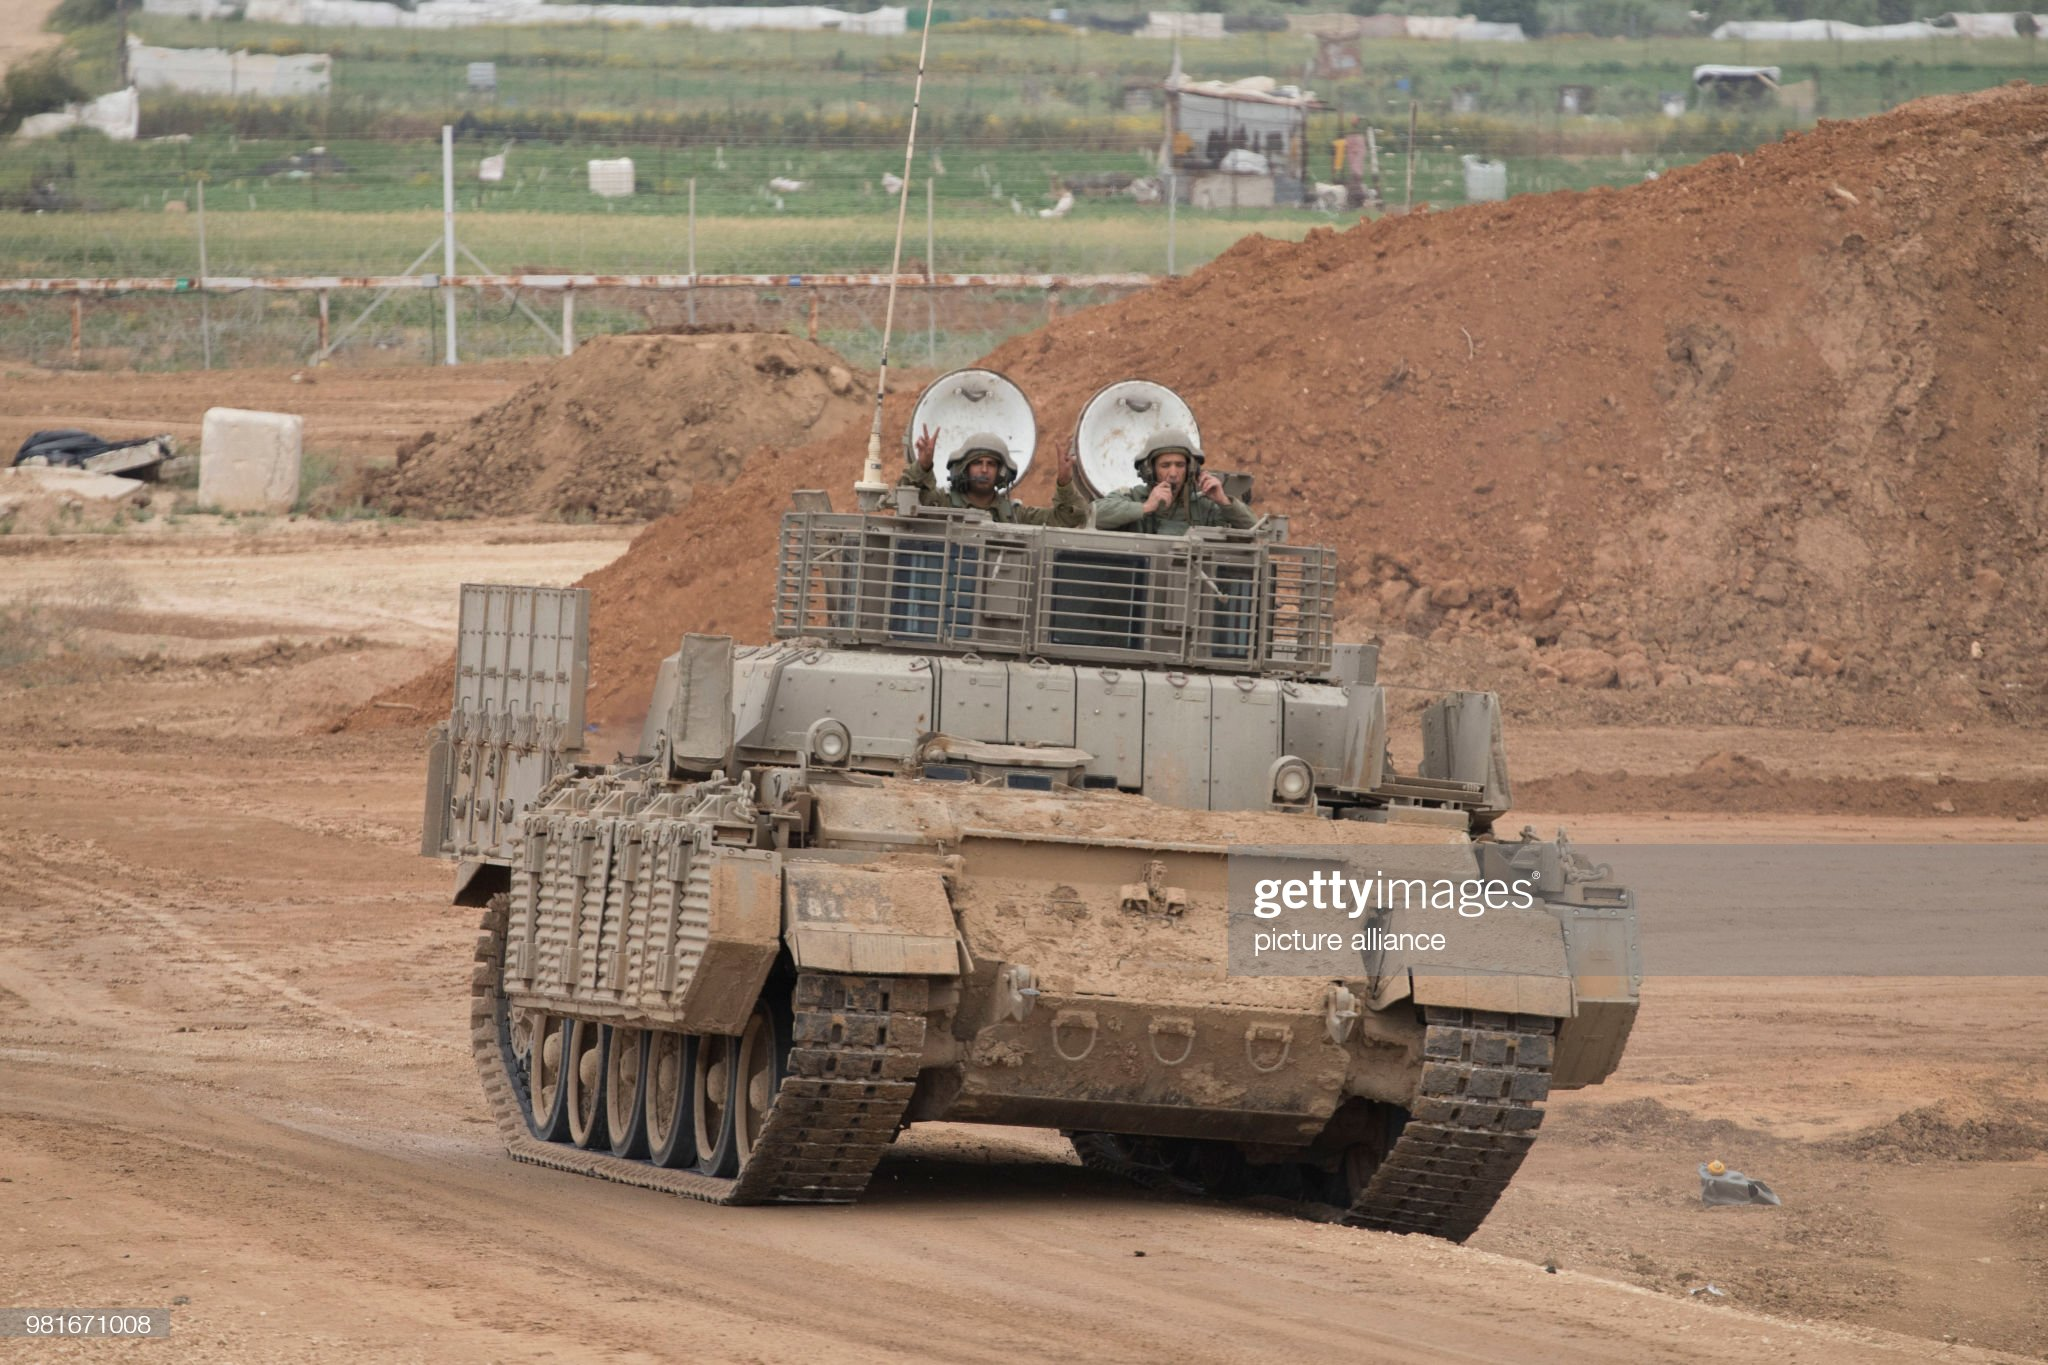 https://media.gettyimages.com/photos/israeli-soldiers-ride-a-tank-along-the-israeli-gaza-border-near-the-picture-id981671008?s=2048x2048